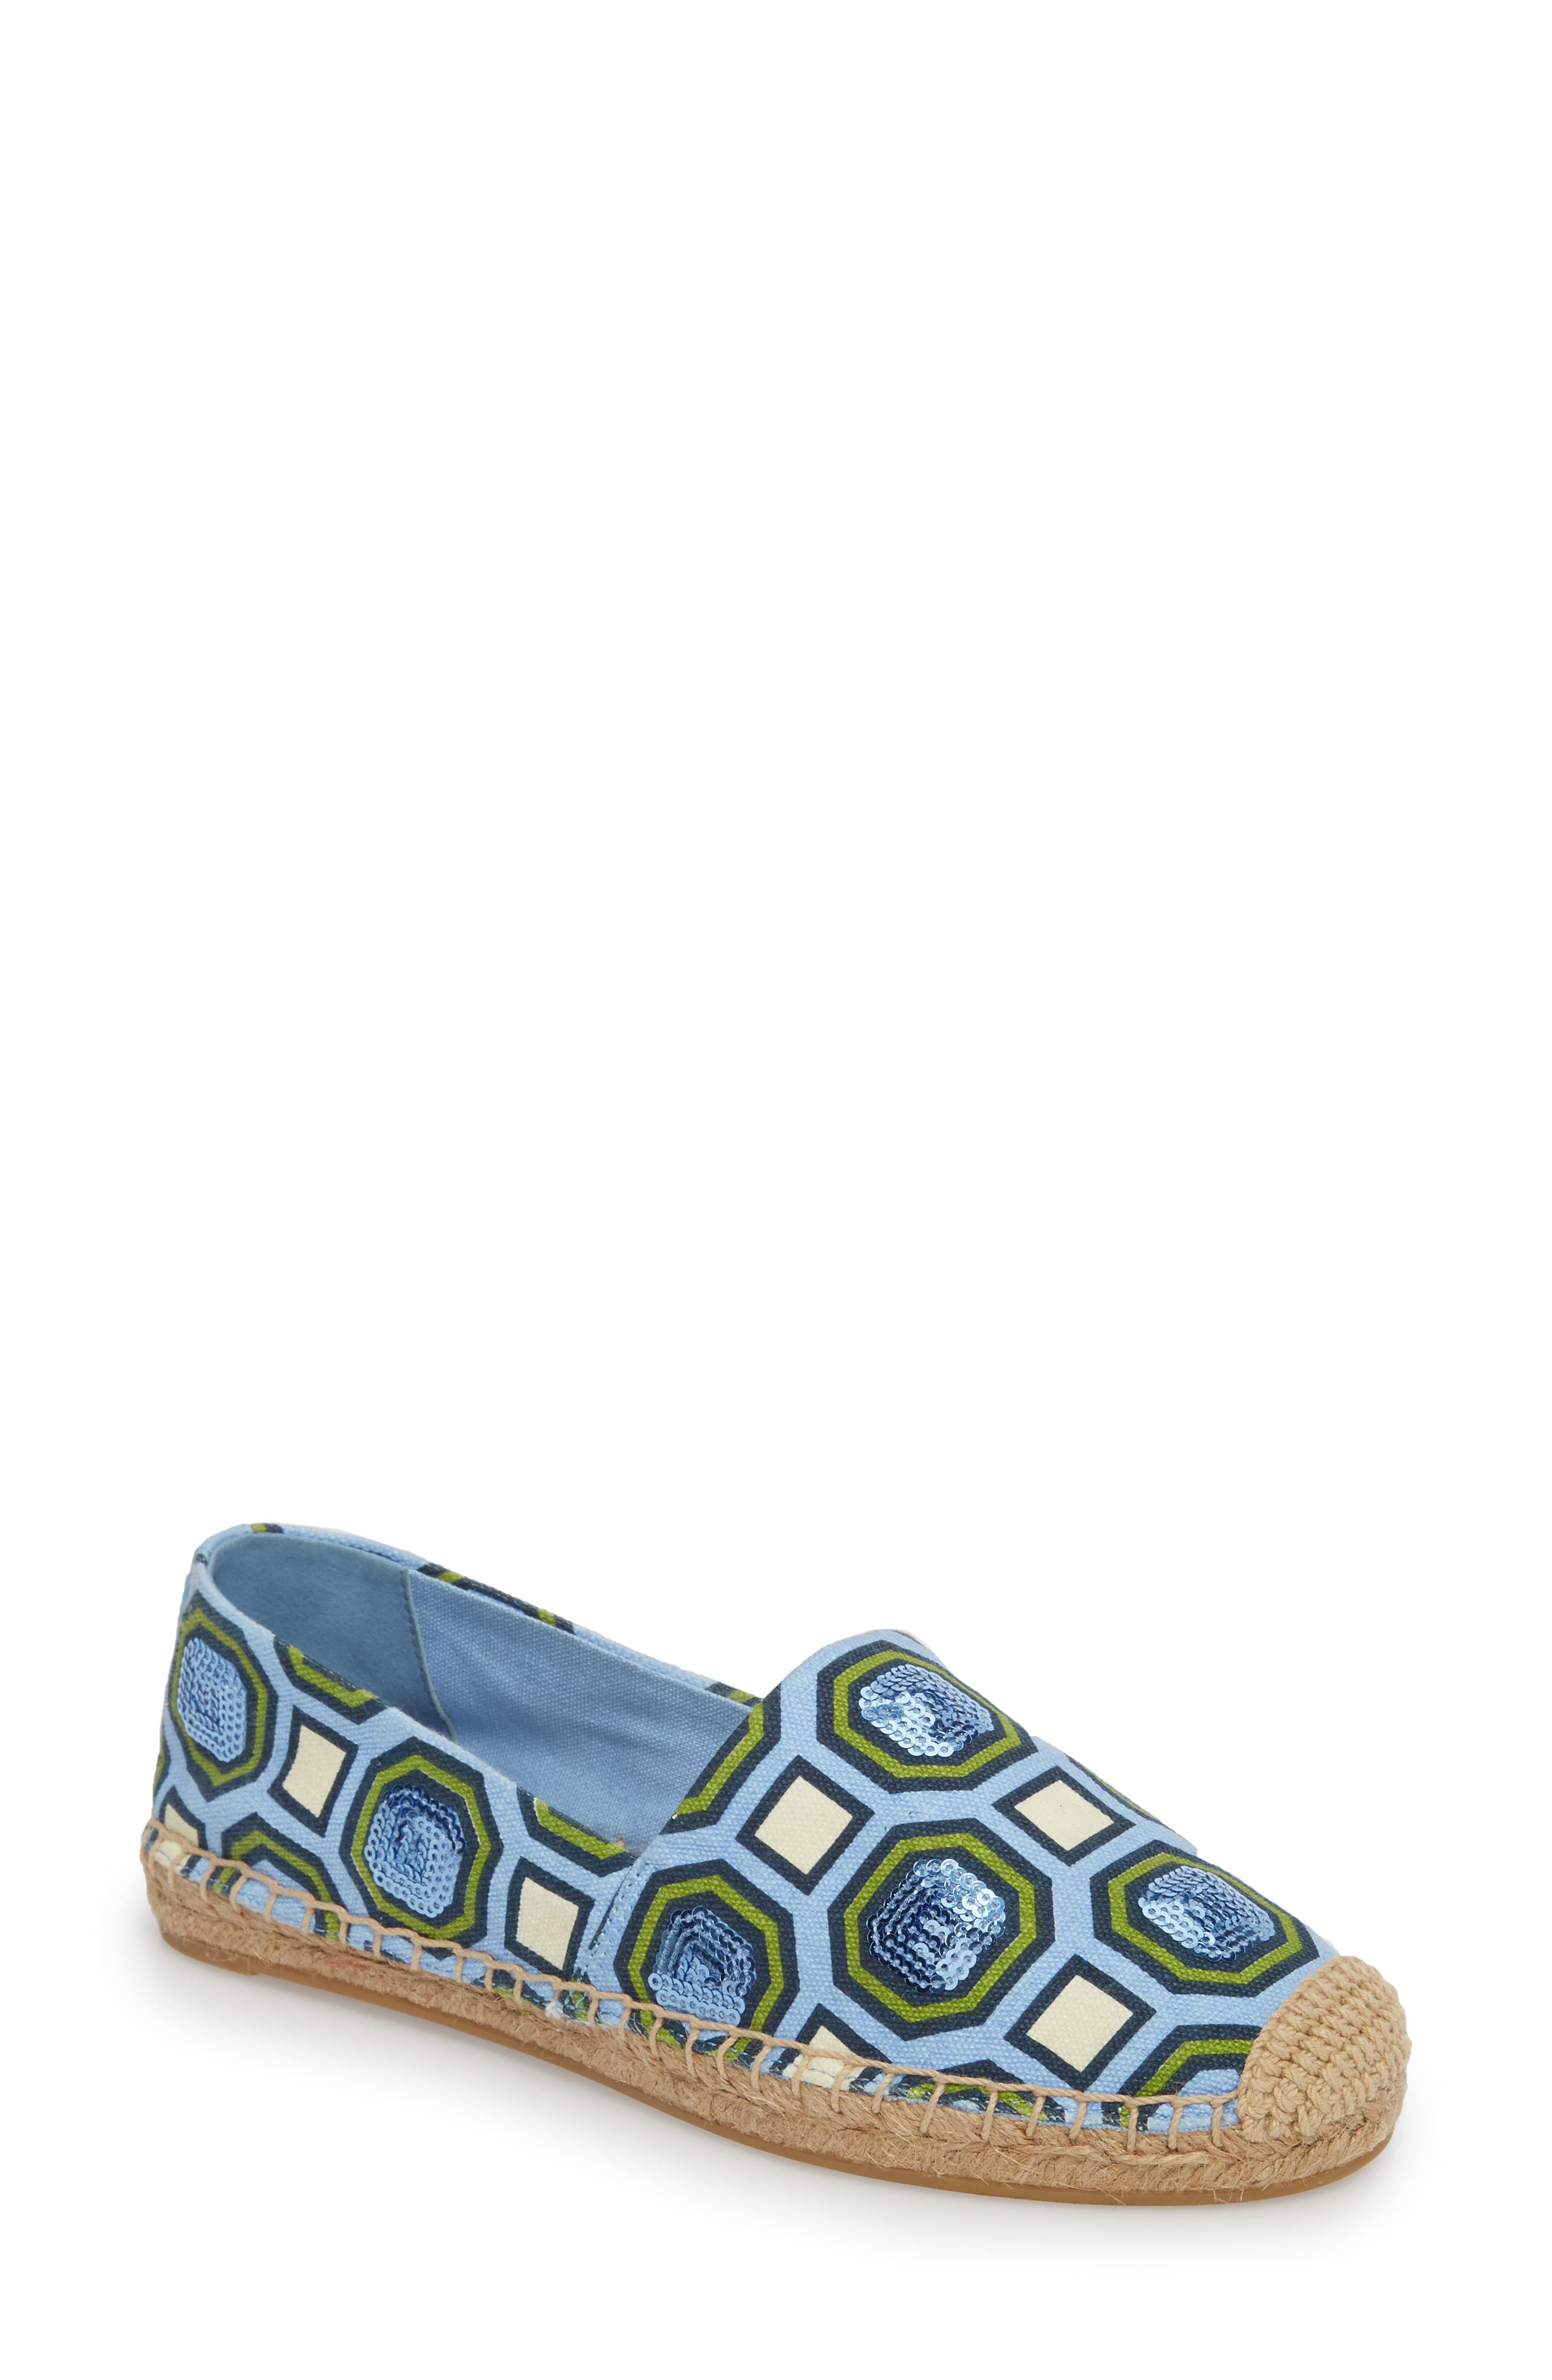 Tory Burch Cecily Sequin Embellished Espadrille (Women)